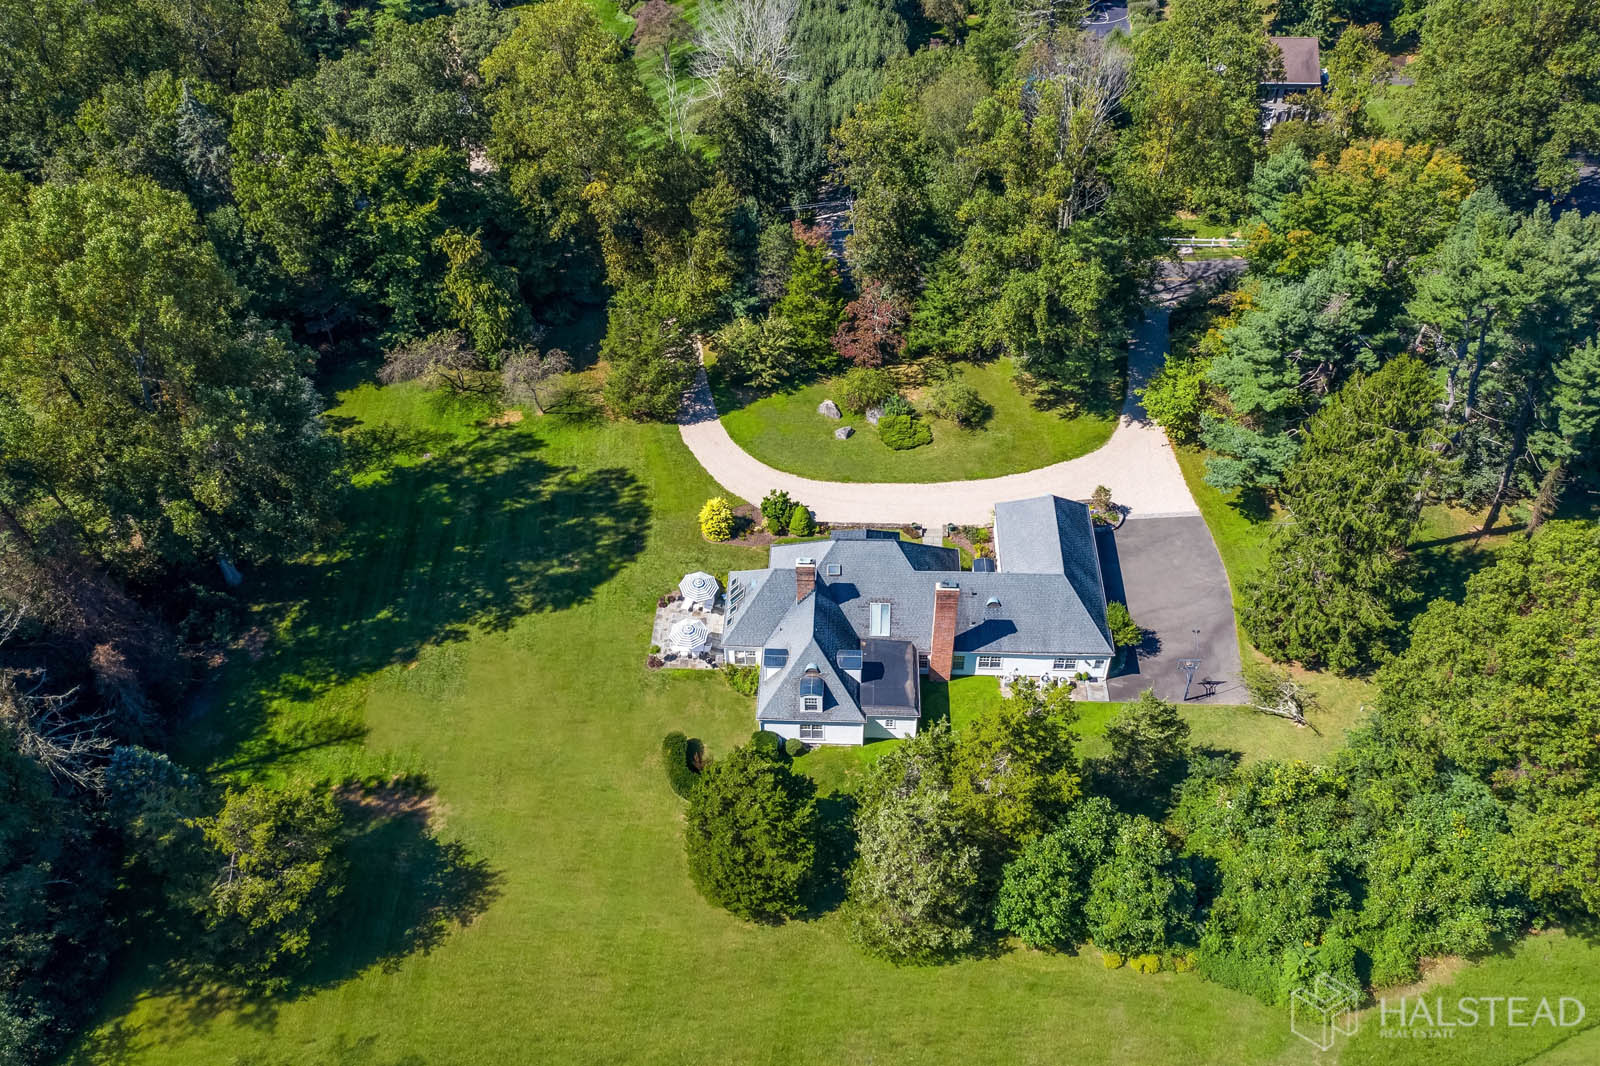 860 Hollow Tree Ridge Road, Darien, Connecticut, 06820, $1,675,000, Property For Sale, Halstead Real Estate, Photo 1